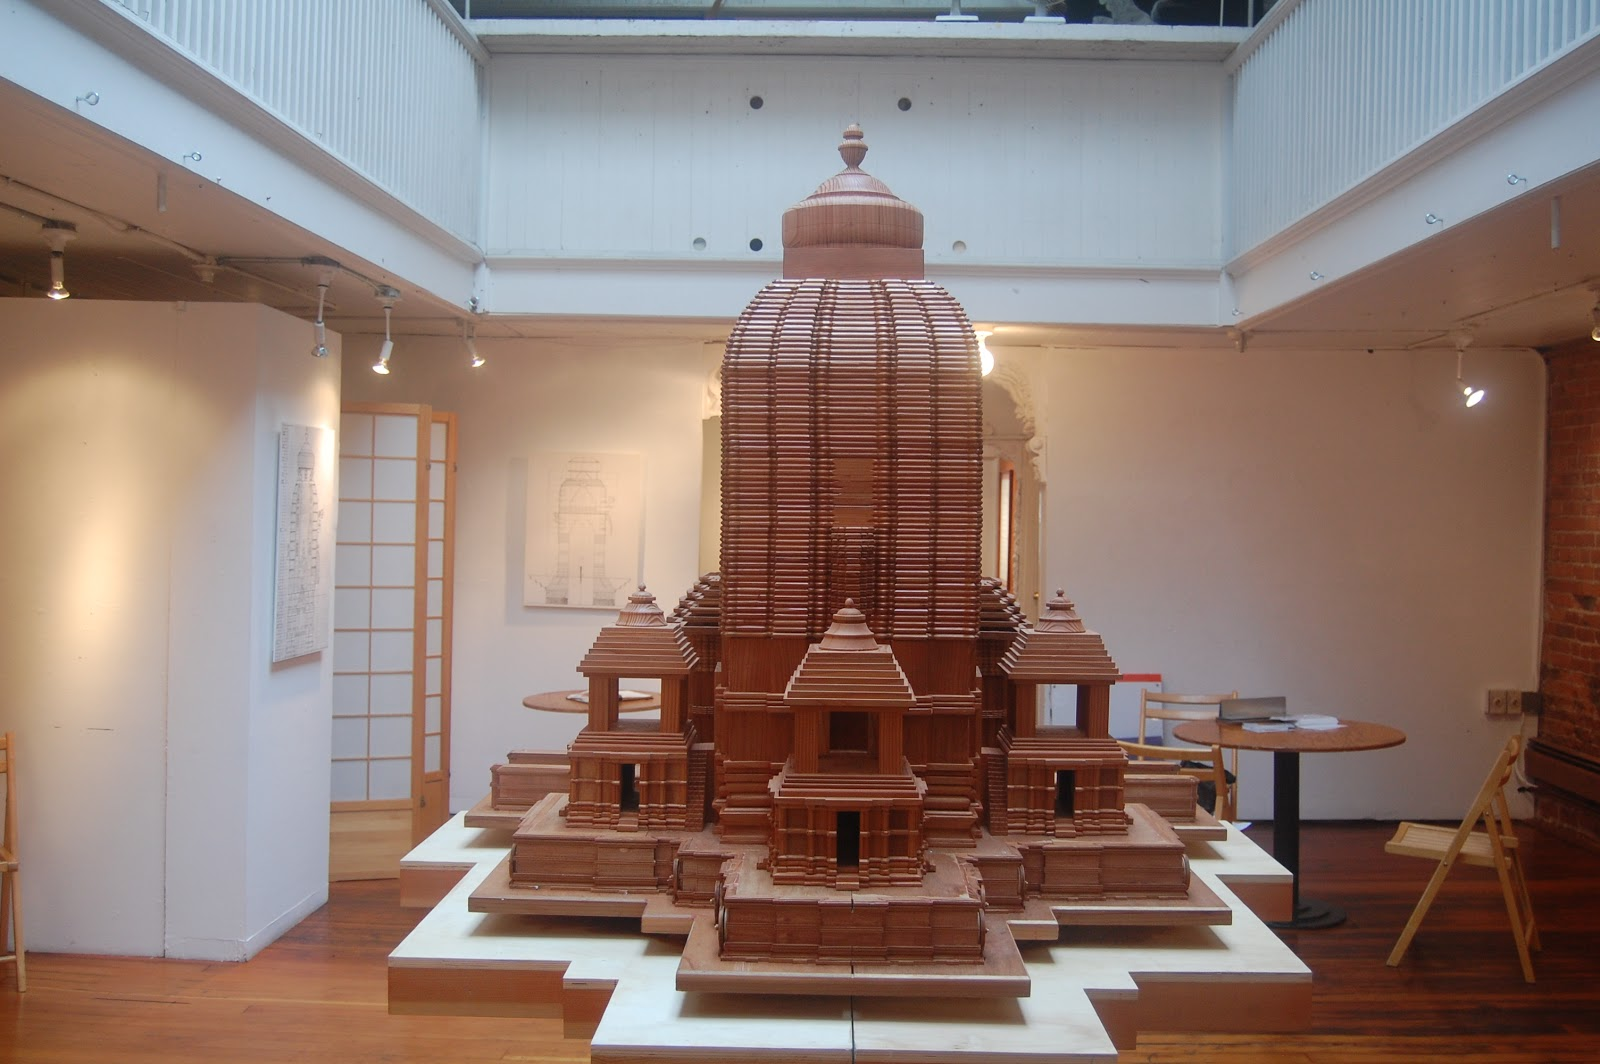 Richard Berger, The Prosthetic Temple, 2008-2011. Redwood, 48 x 60 x 81 inches.